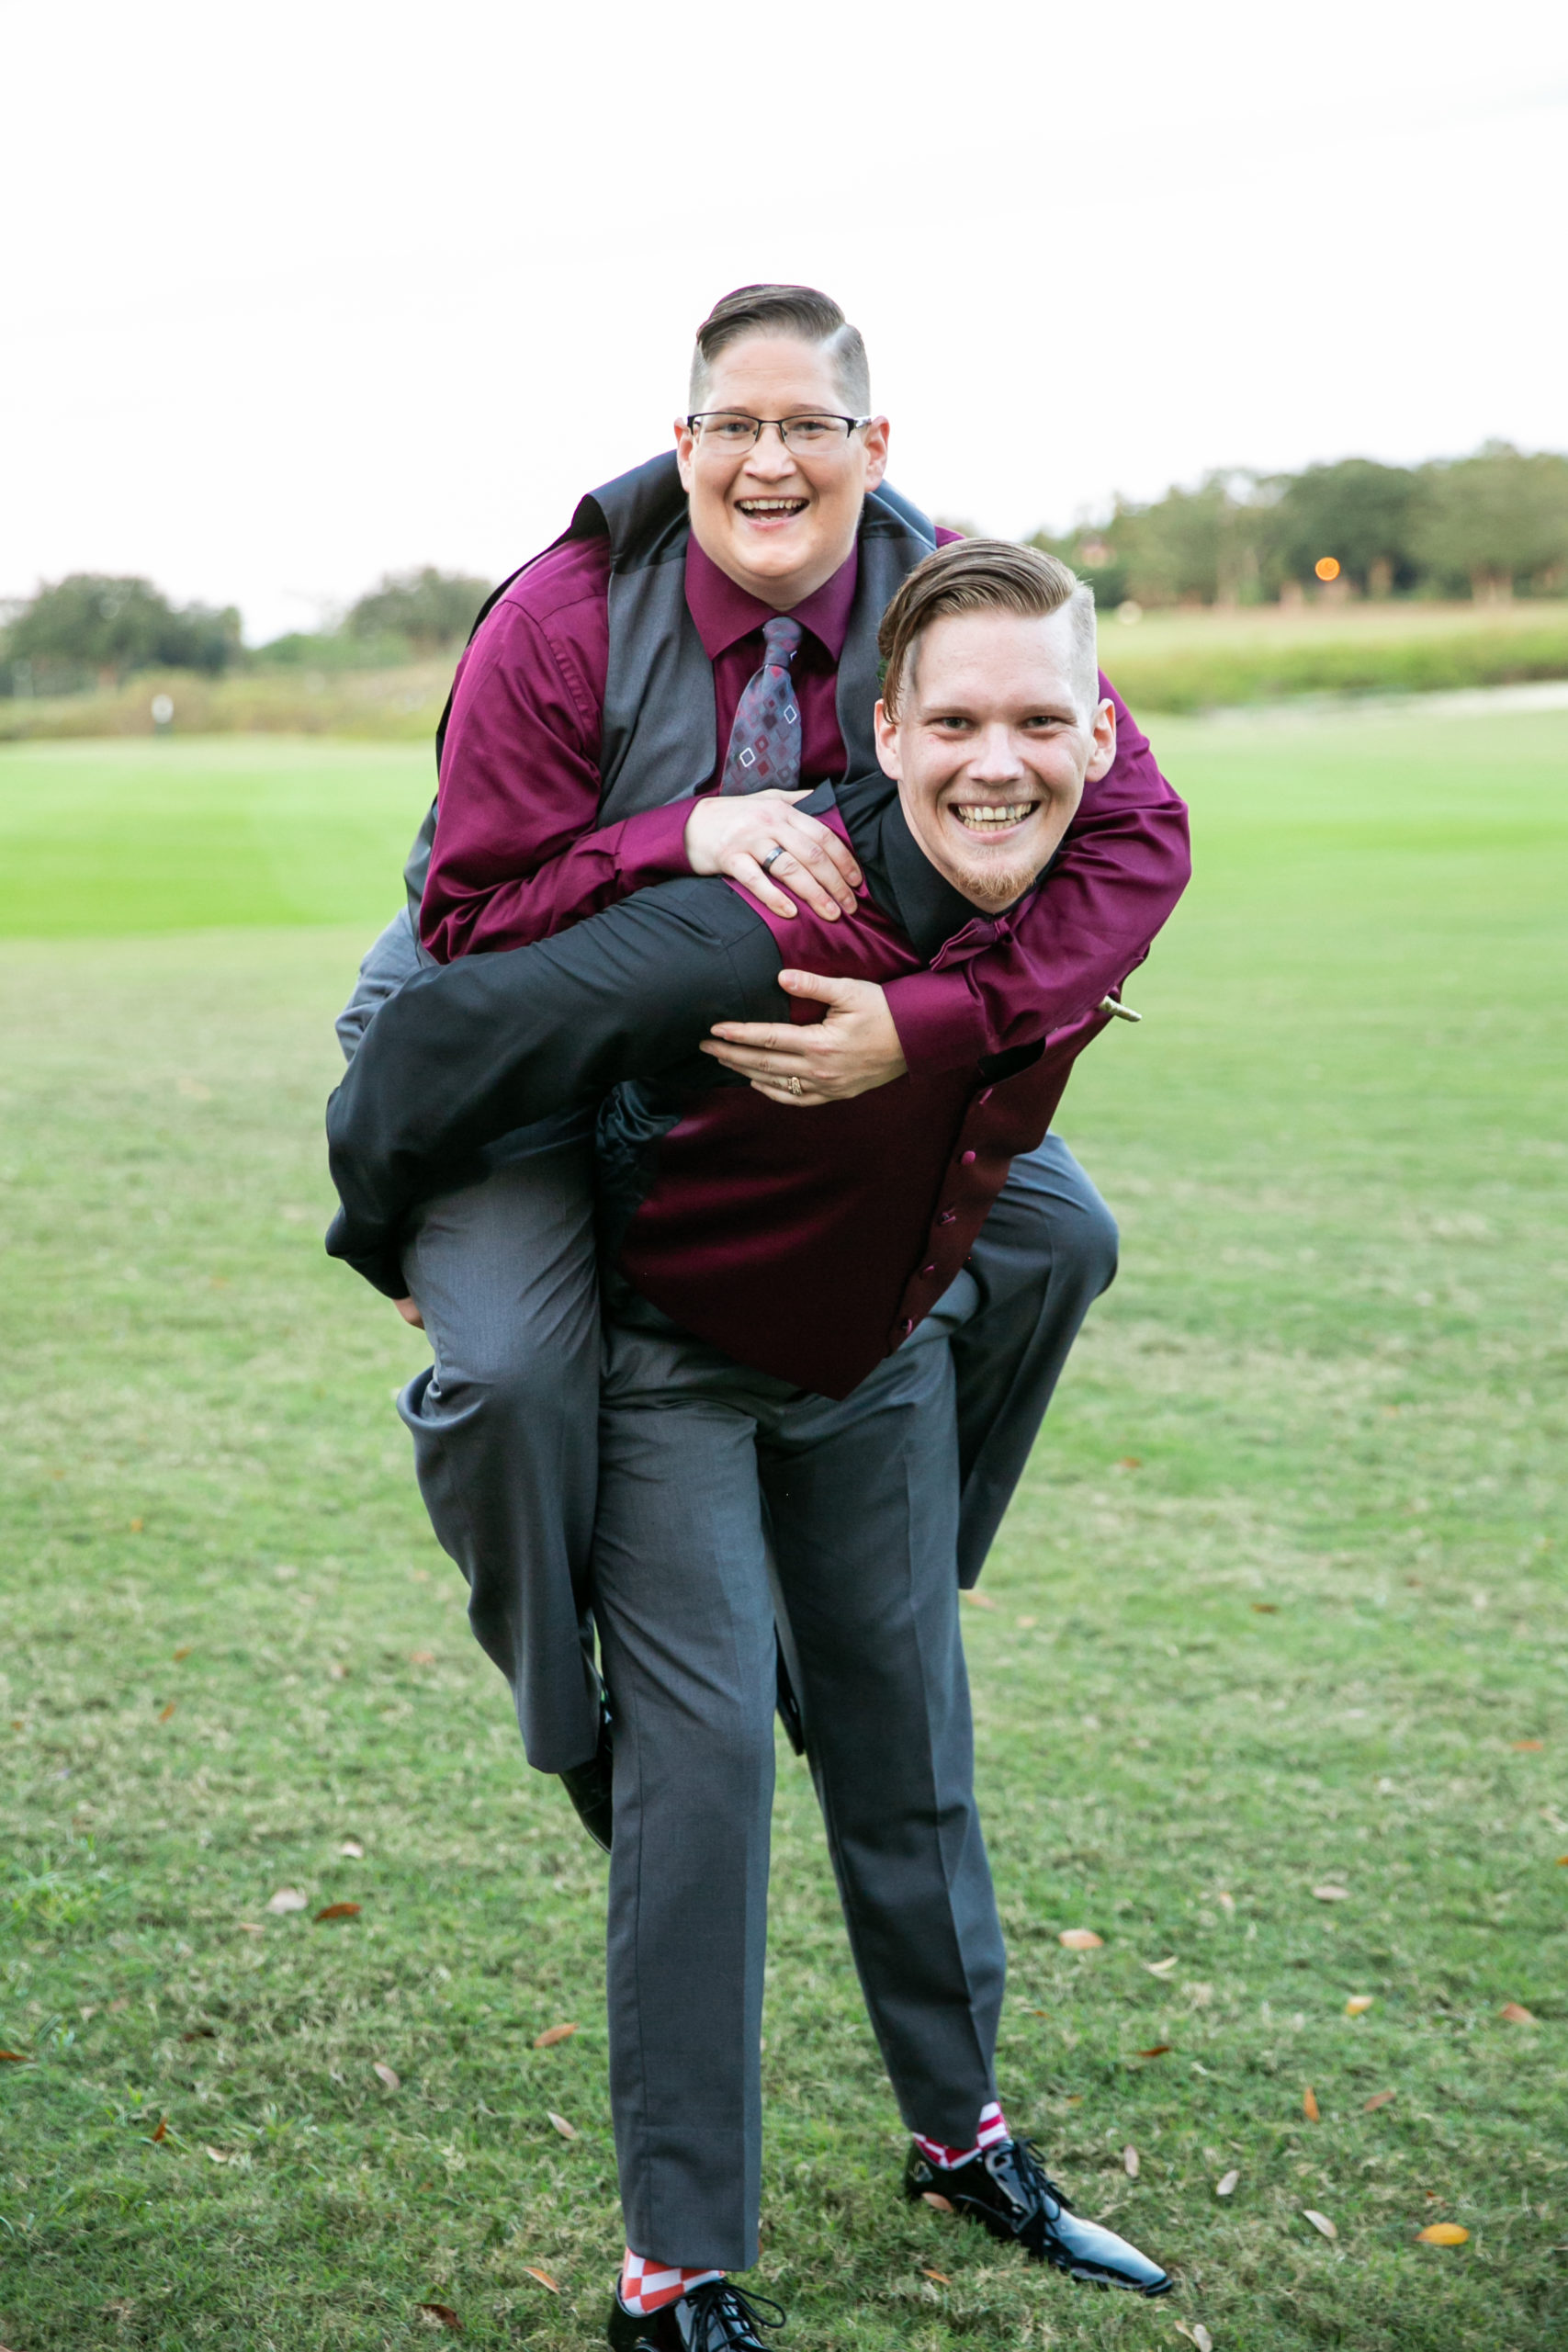 brother of bride giving the bride a piggy back ride